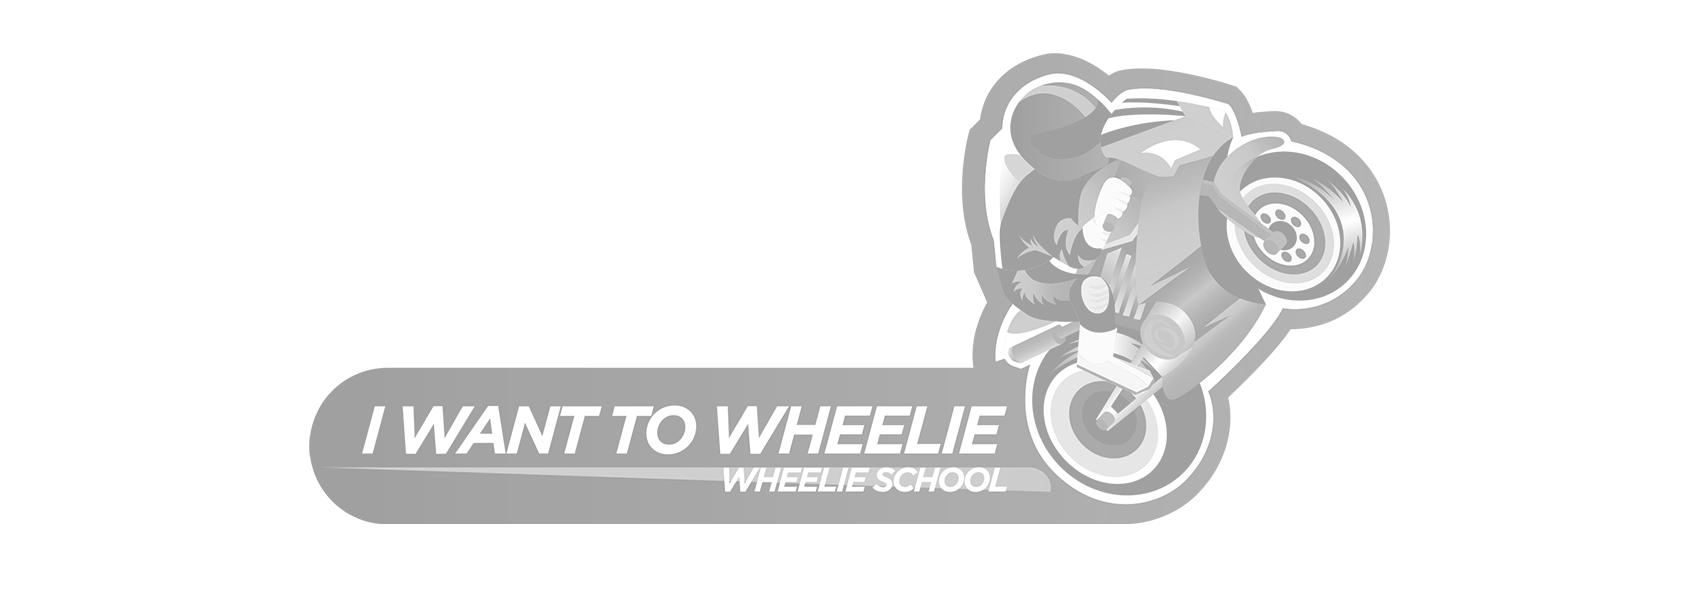 iwanttowheelie.co.uk